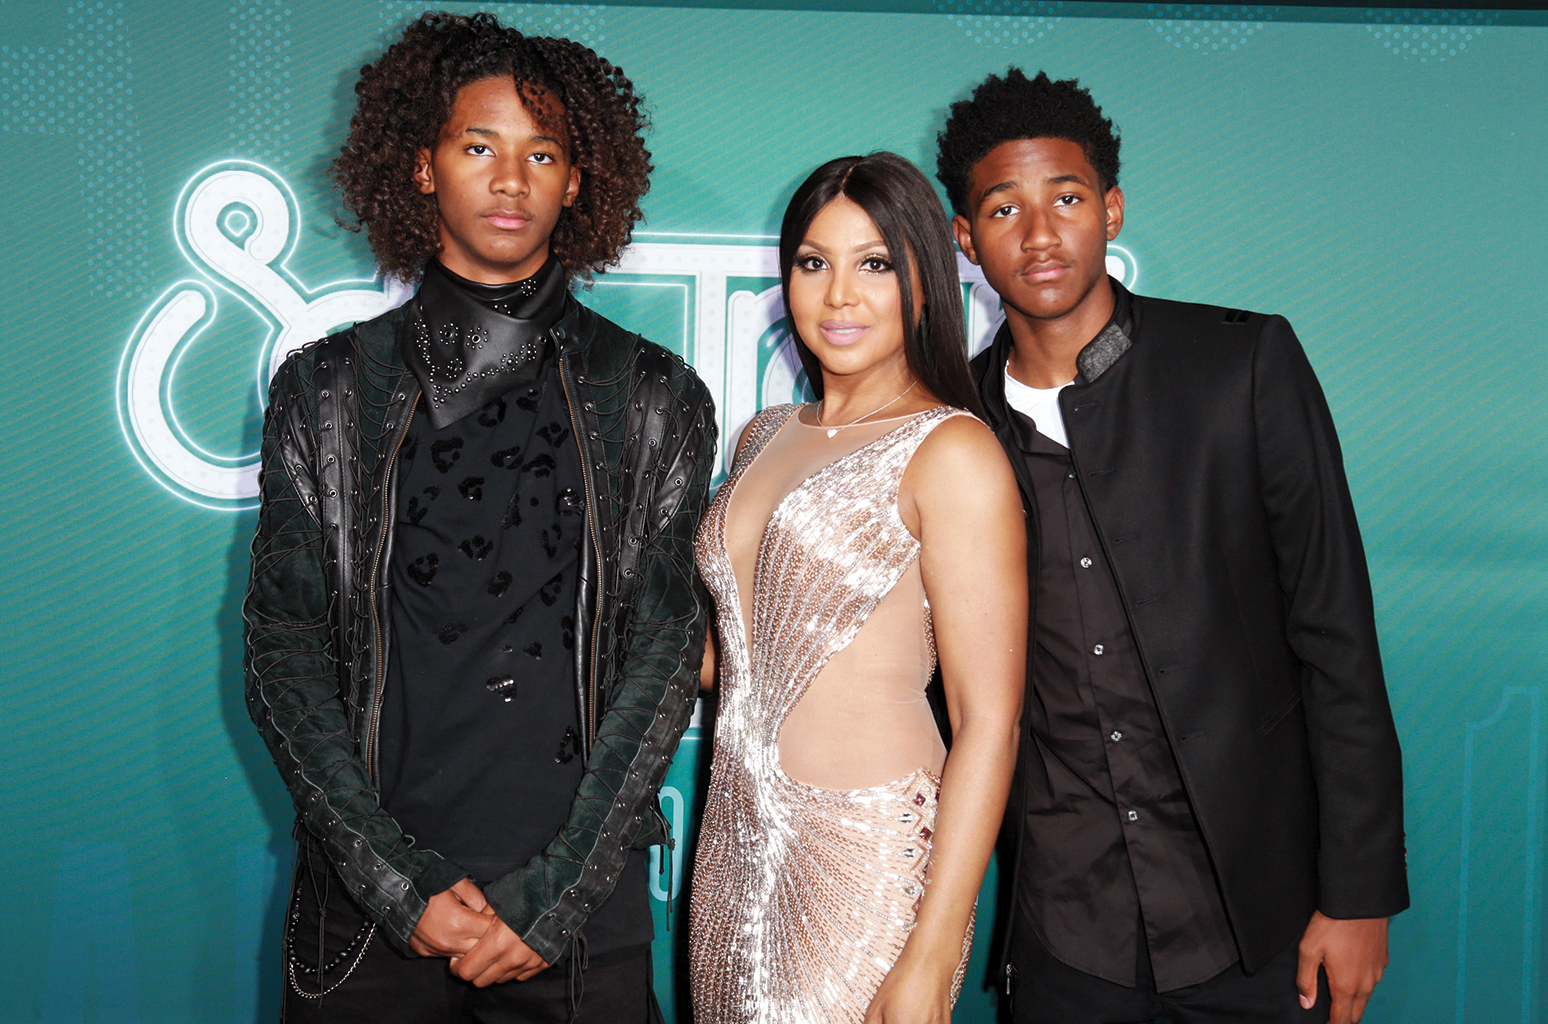 Toni Braxton Celebrates The 17th Birthday Of Her Son, Diezel - Check Out The Mom-Son Video She Shared